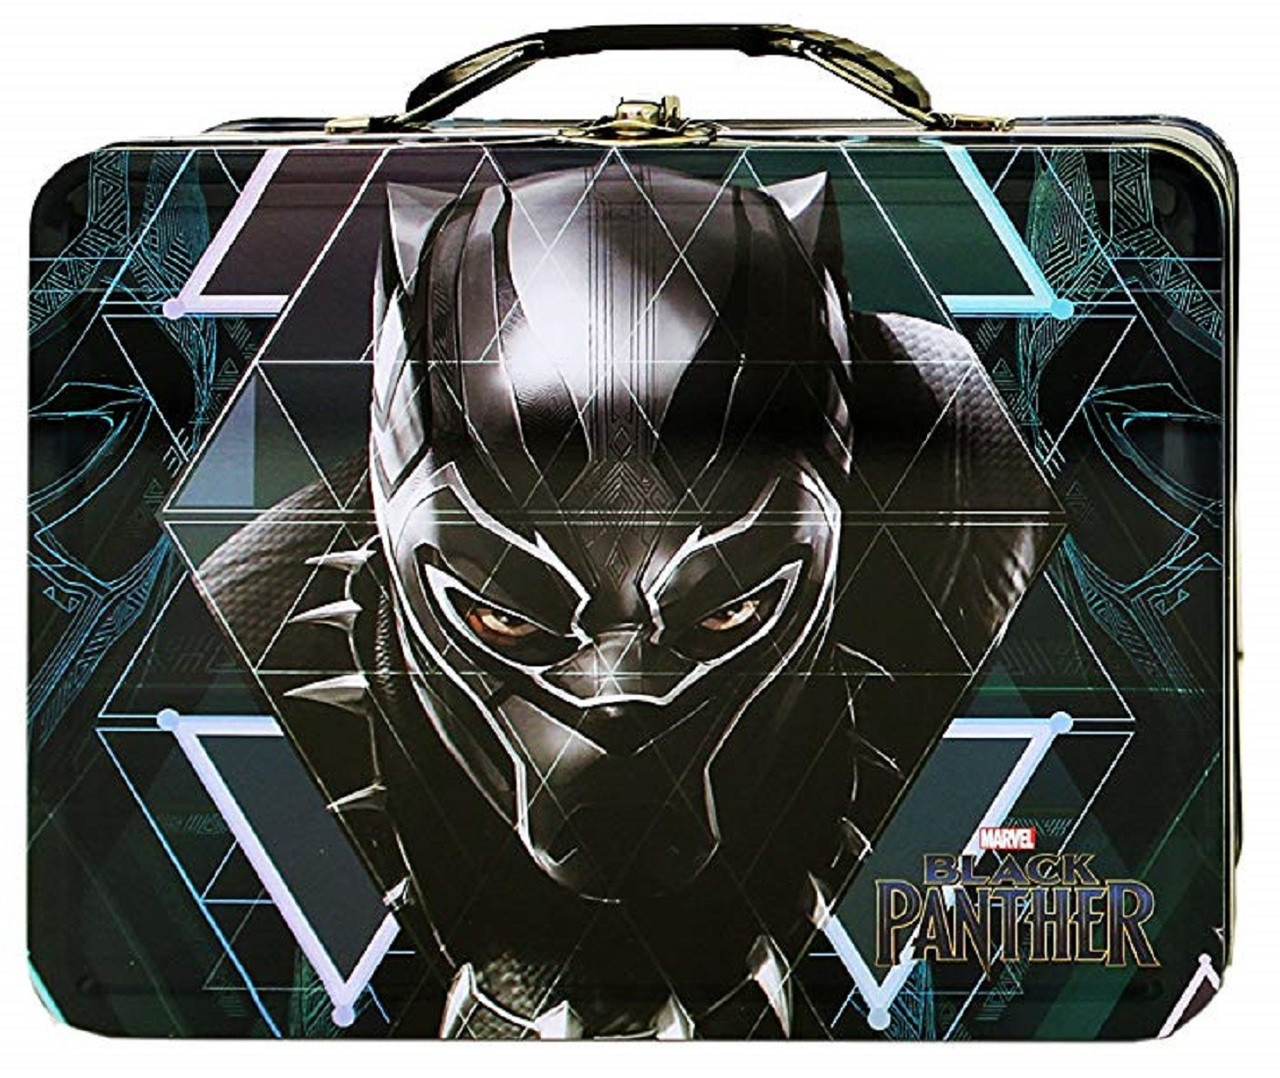 Party Favors - Black Panther - Collectible Tin Box - Face